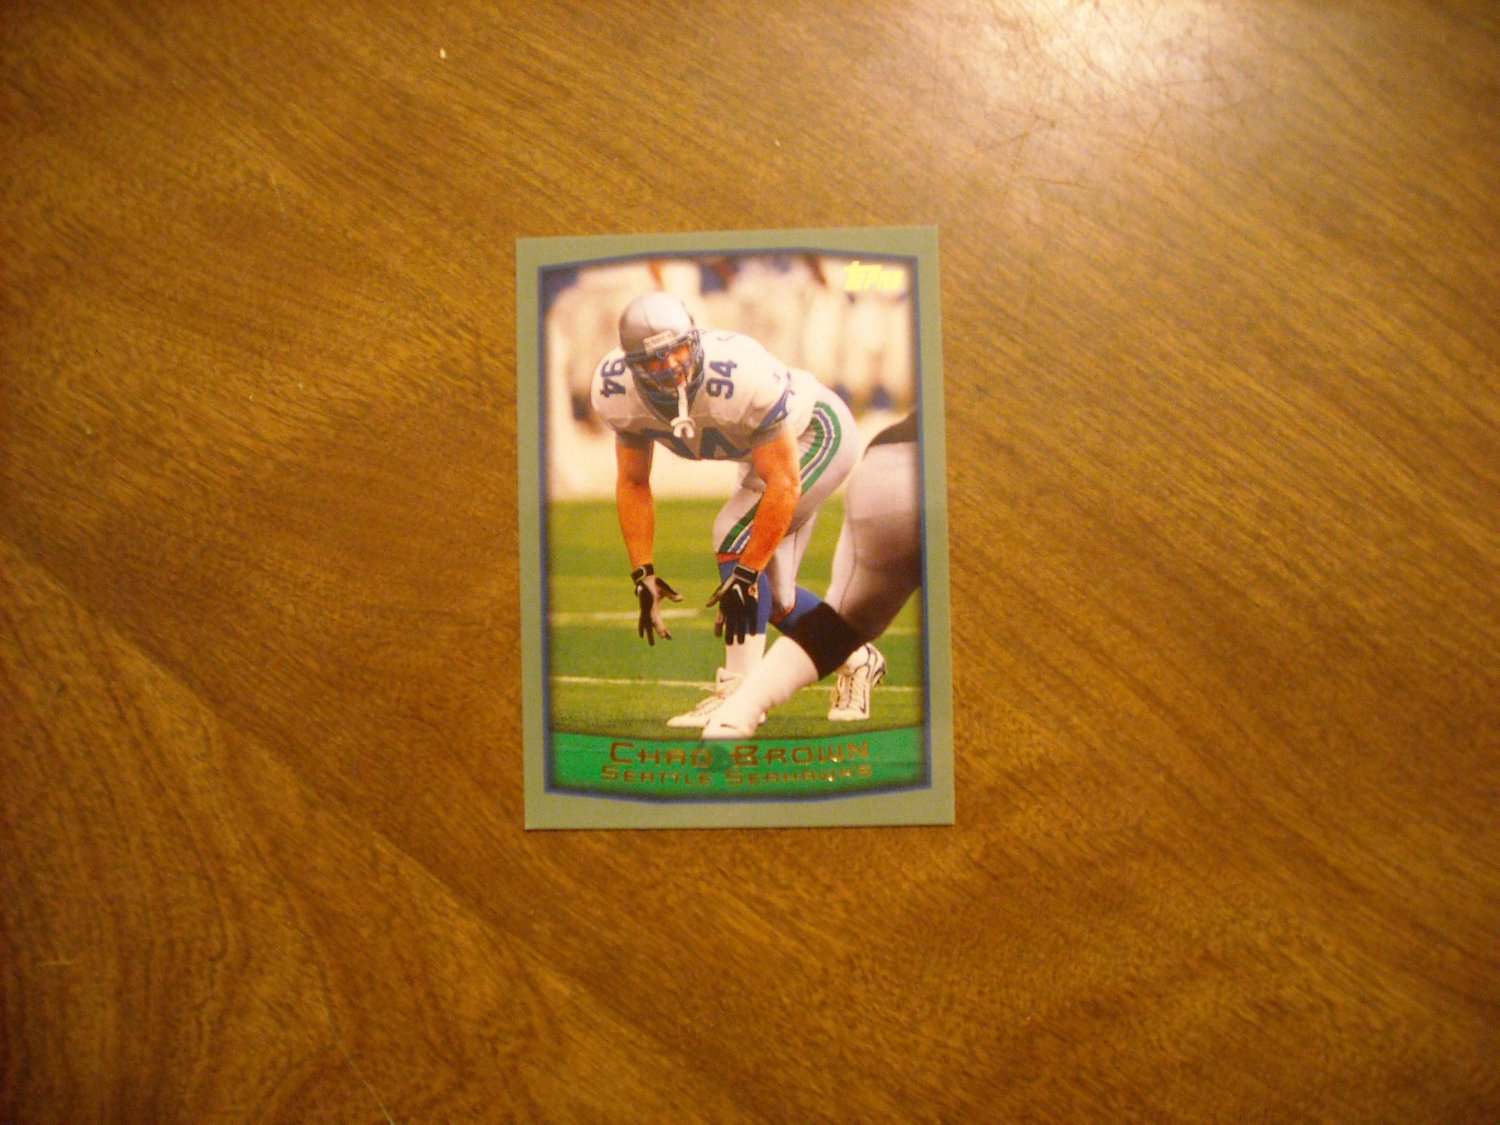 Chad Brown Seattle Seahawks OLB Card No. 255 - 1999 Topps Football Card